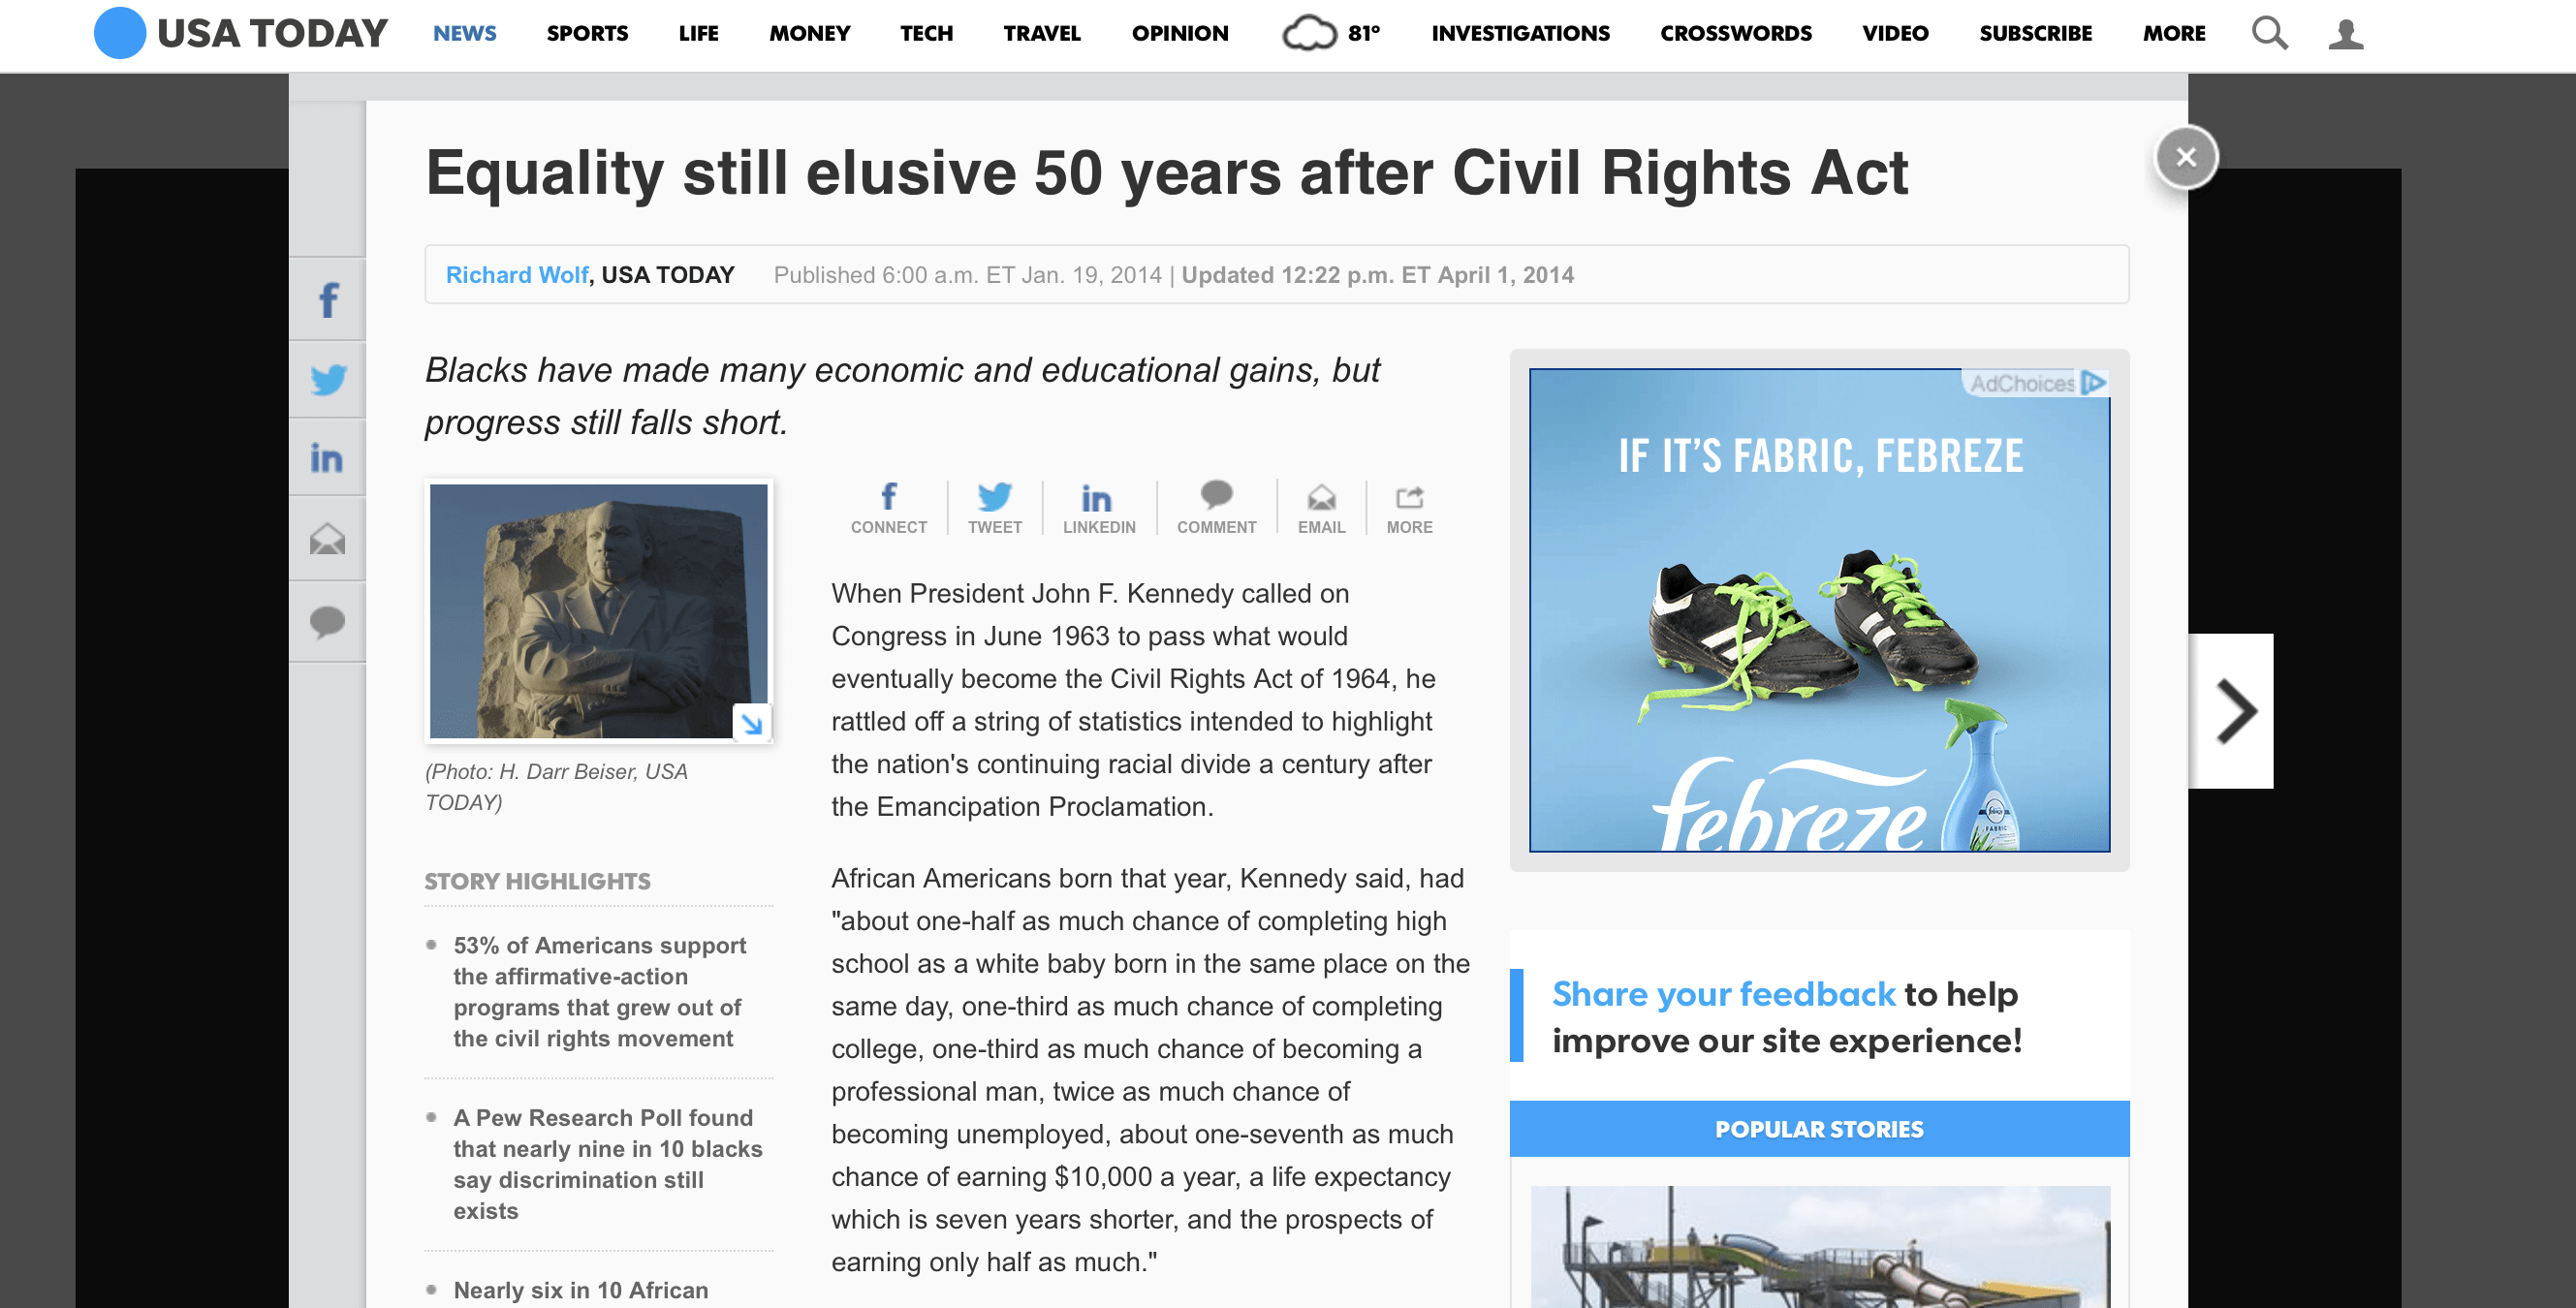 Equality still elusive 50 years after Civil Rights Act